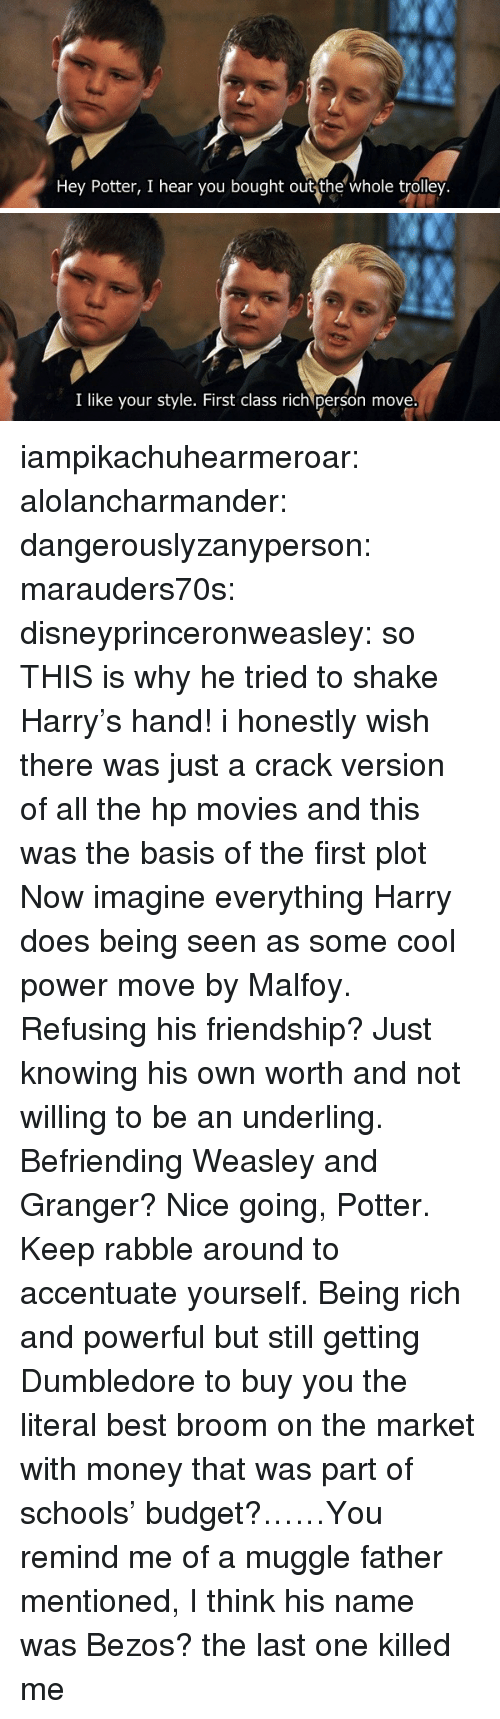 His Name Was: Hey Potter, I hear you bought out the whole trolley.   I like your style. First class rich person move iampikachuhearmeroar: alolancharmander:  dangerouslyzanyperson:  marauders70s:  disneyprinceronweasley: so THIS is why he tried to shake Harry's hand! i honestly wish there was just a crack version of all the hp movies and this was the basis of the first plot   Now imagine everything Harry does being seen as some cool power move by Malfoy. Refusing his friendship? Just knowing his own worth and not willing to be an underling. Befriending Weasley and Granger? Nice going, Potter. Keep rabble around to accentuate yourself.  Being rich and powerful but still getting Dumbledore to buy you the literal best broom on the market with money that was part of schools' budget?……You remind me of a muggle father mentioned, I think his name was Bezos?   the last one killed me